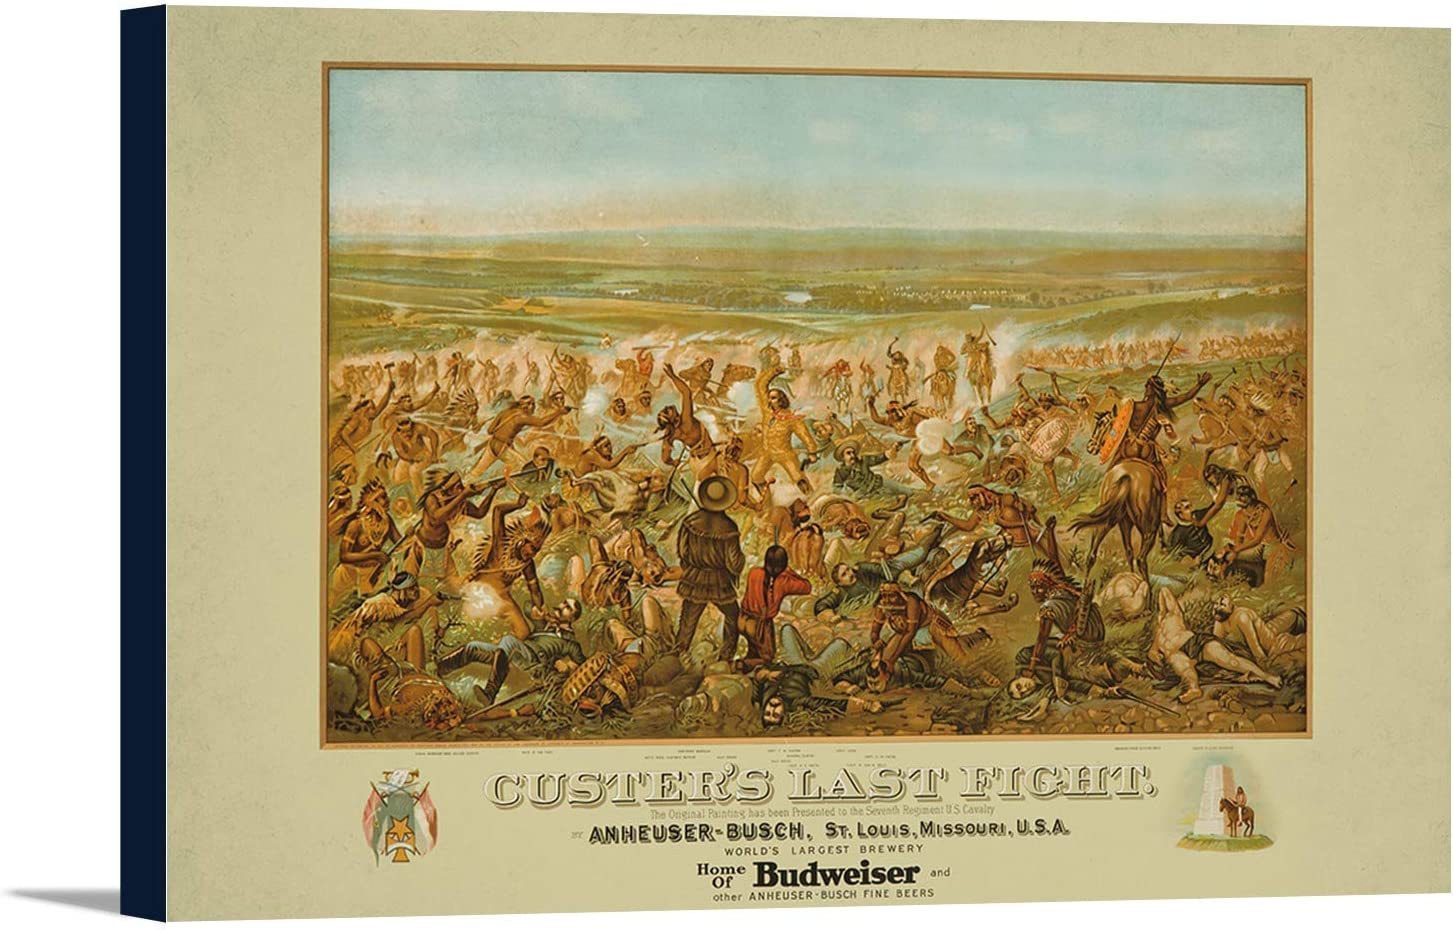 Custer's Last Fight - Anheuser - Busch - Budweiser Vintage Poster (artist: Becker) USA c. 1936 (36x24 Gallery Wrapped Stretched Canvas)